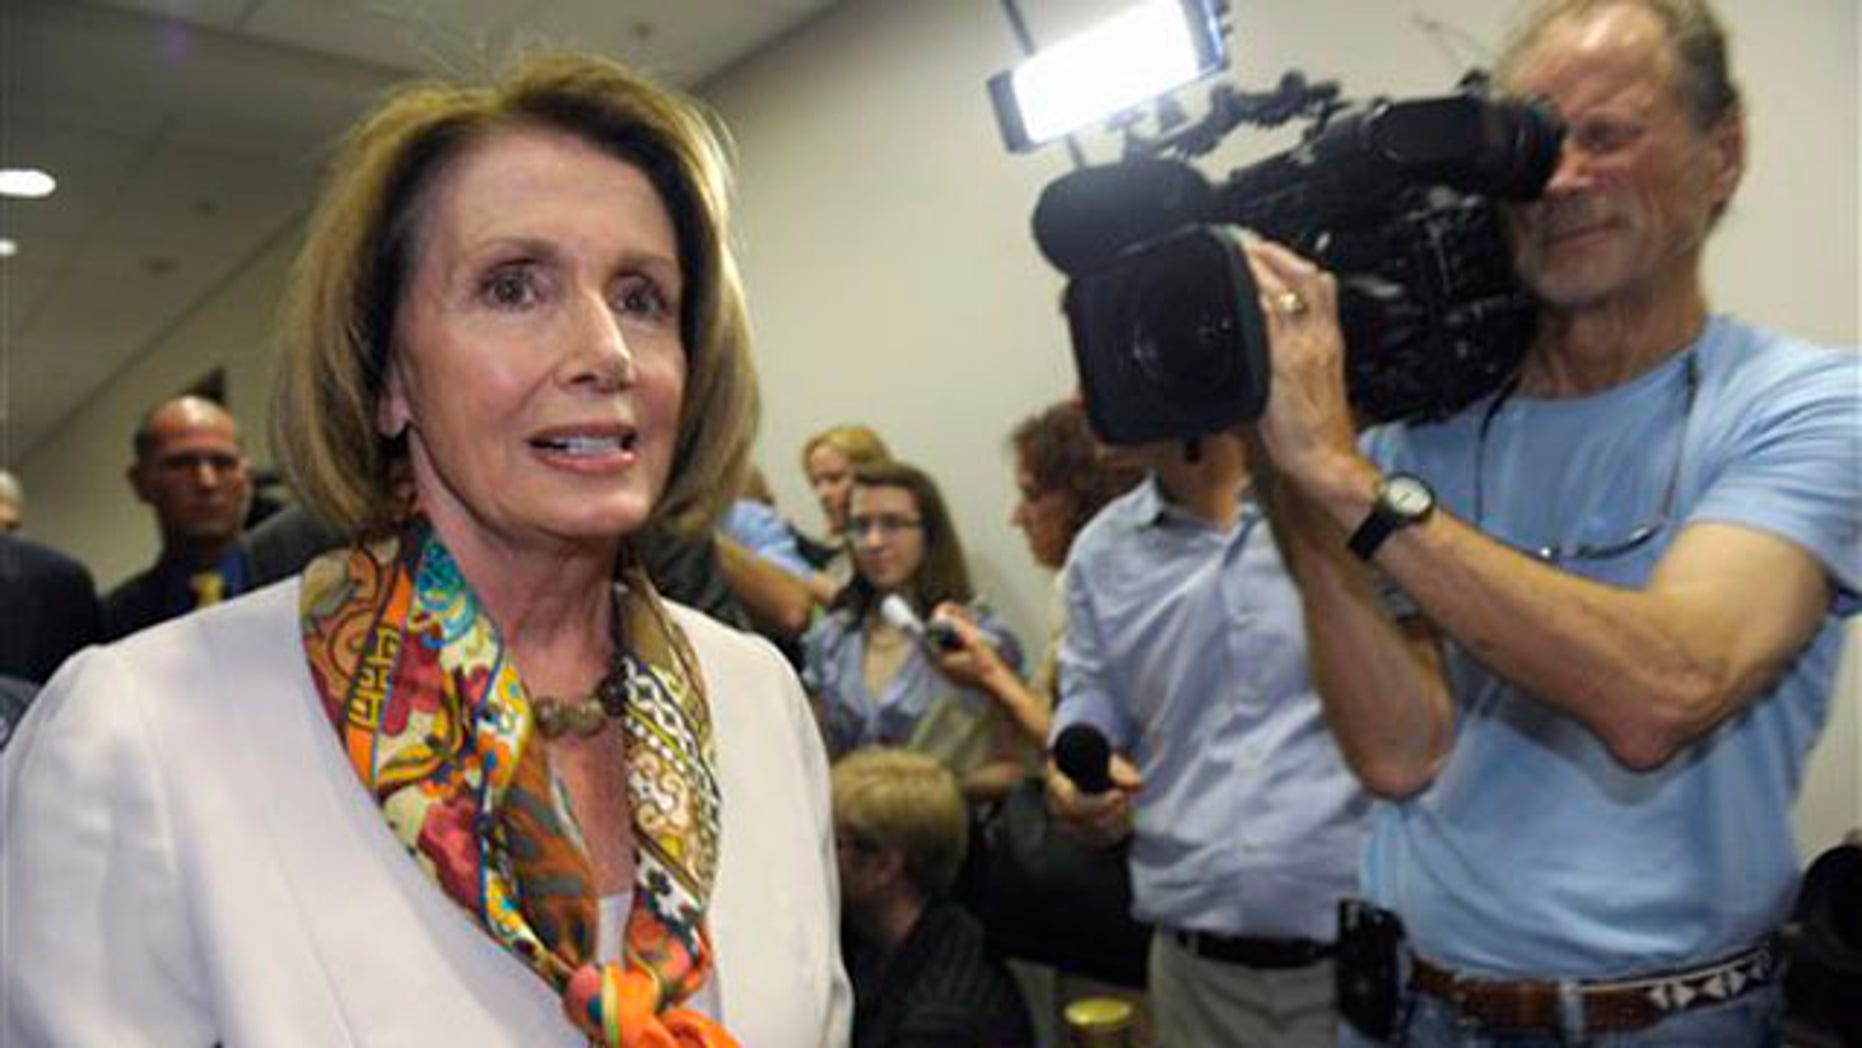 House Minority Leader Nancy Pelosi walks past reporters as she heads to a Democratic caucus meeting on Capitol Hill in Washington Aug. 1.